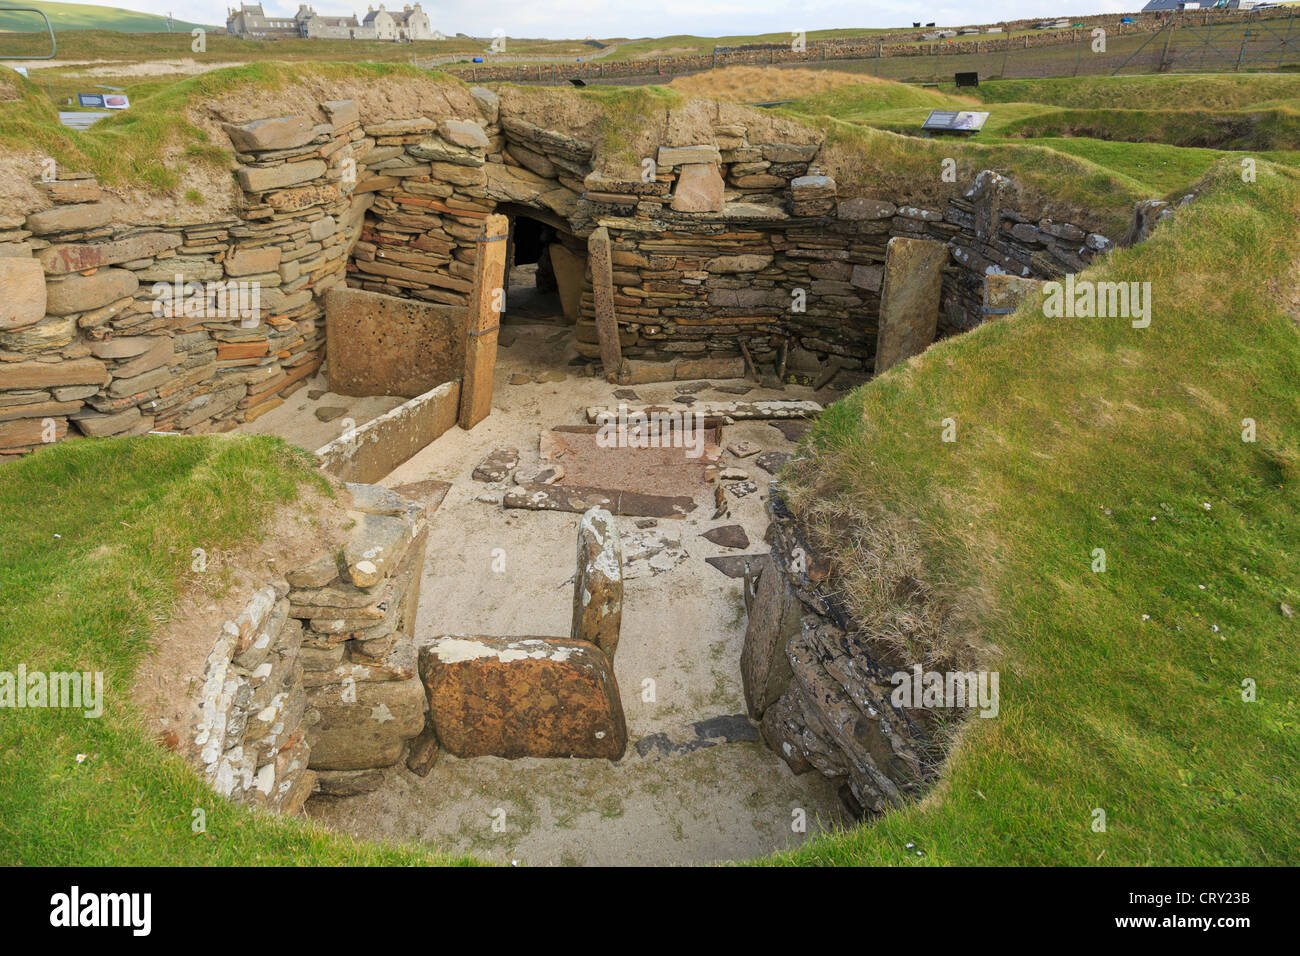 Excavations of primeval dwelling with connecting passage in prehistoric Neolithic village at Skara Brae Orkney Islands Stock Photo